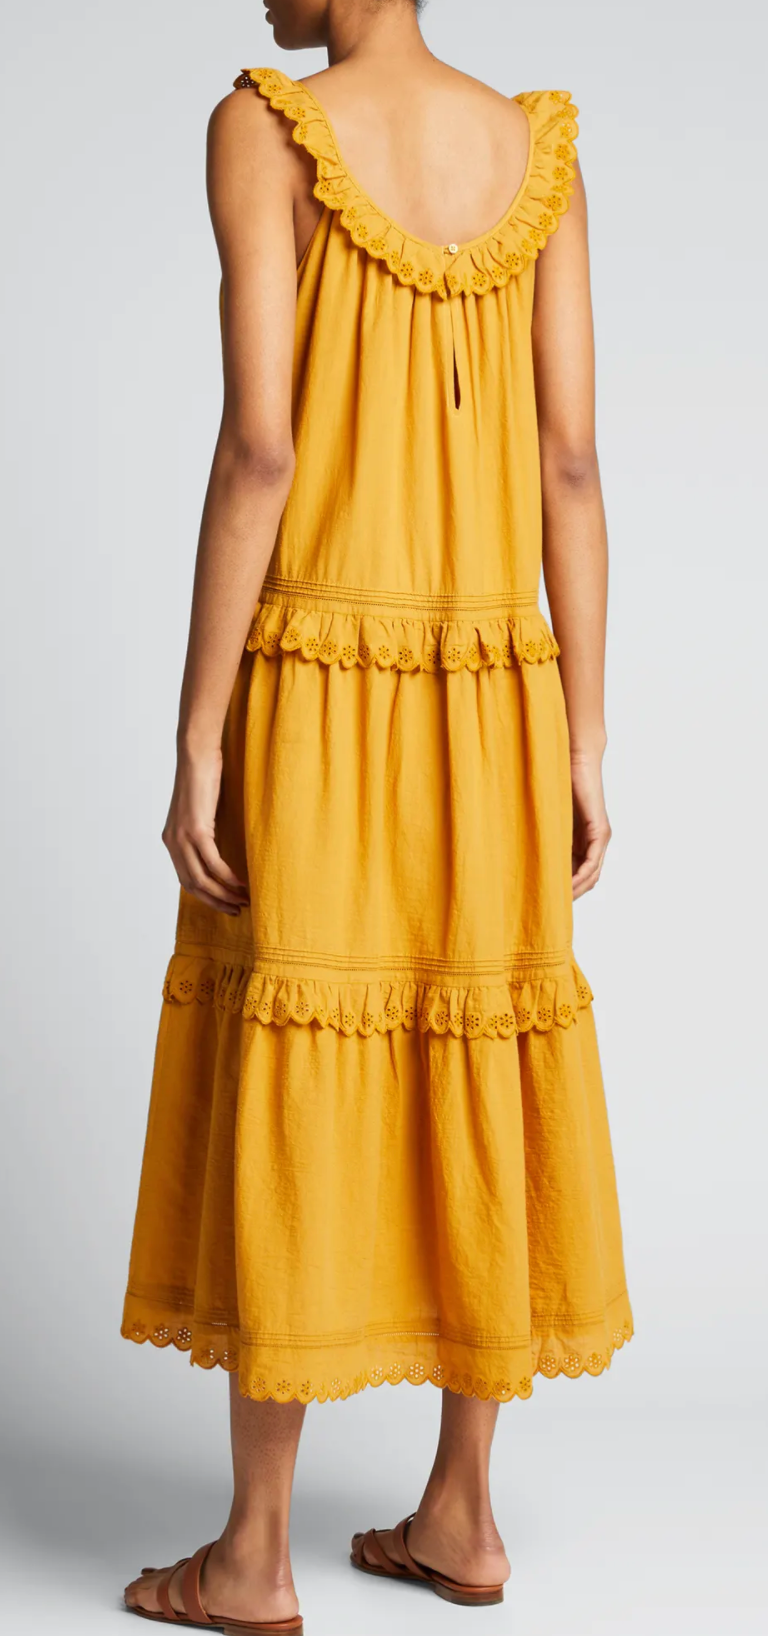 The Eyelet Magnolia Dress